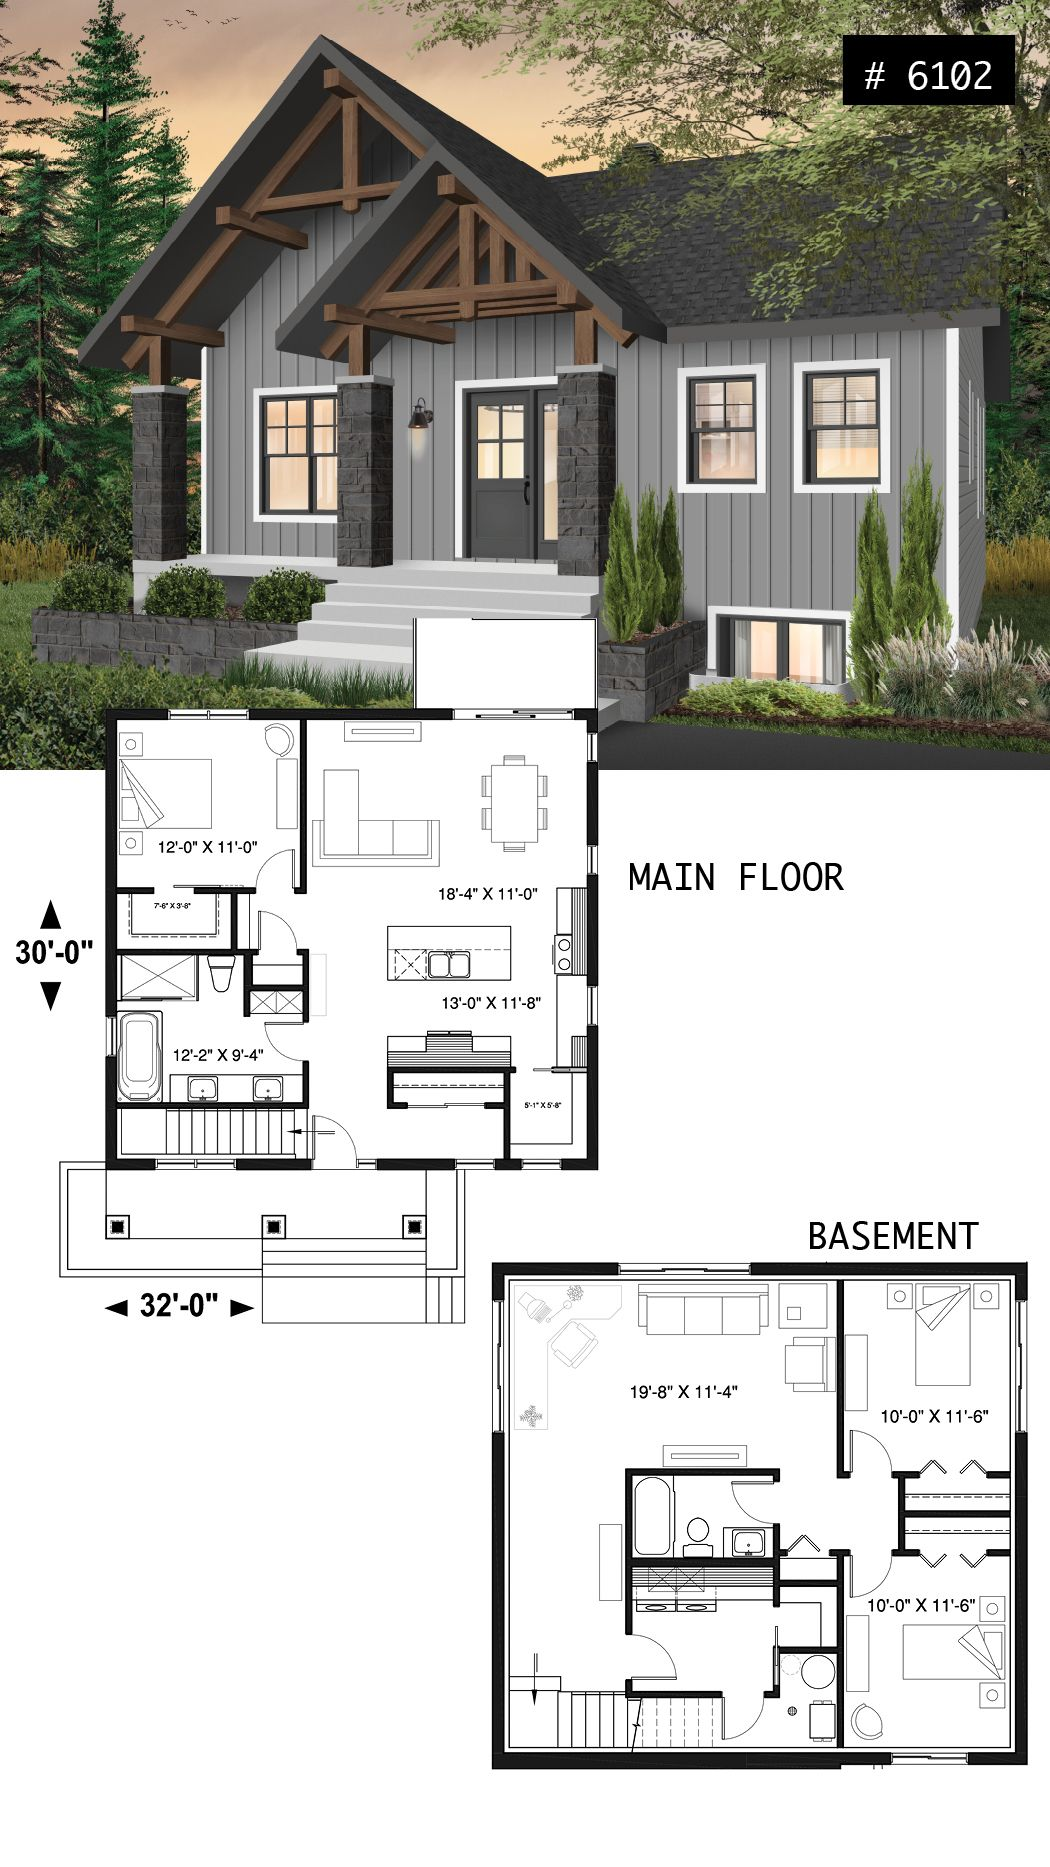 3 Bedroom Houses For Rent In Cleveland Ohio West Side: Small And Affordable Bungalow House Plan With Master On